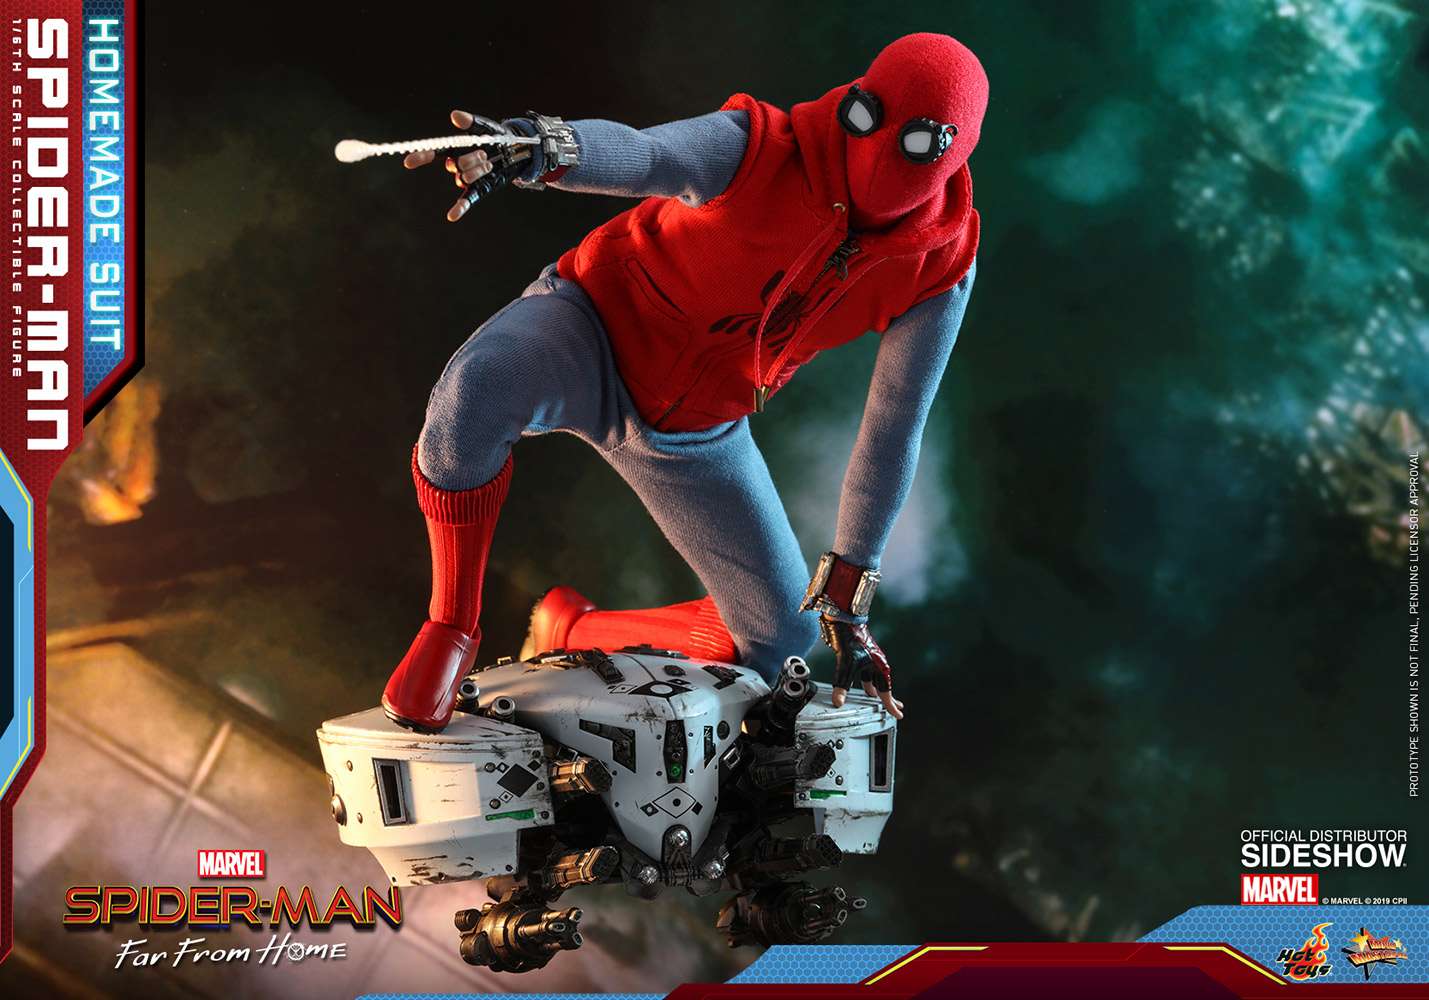 Spider-Man (Homemade Suit) Spider-Man: Far From Home by Hot Toys 1/6